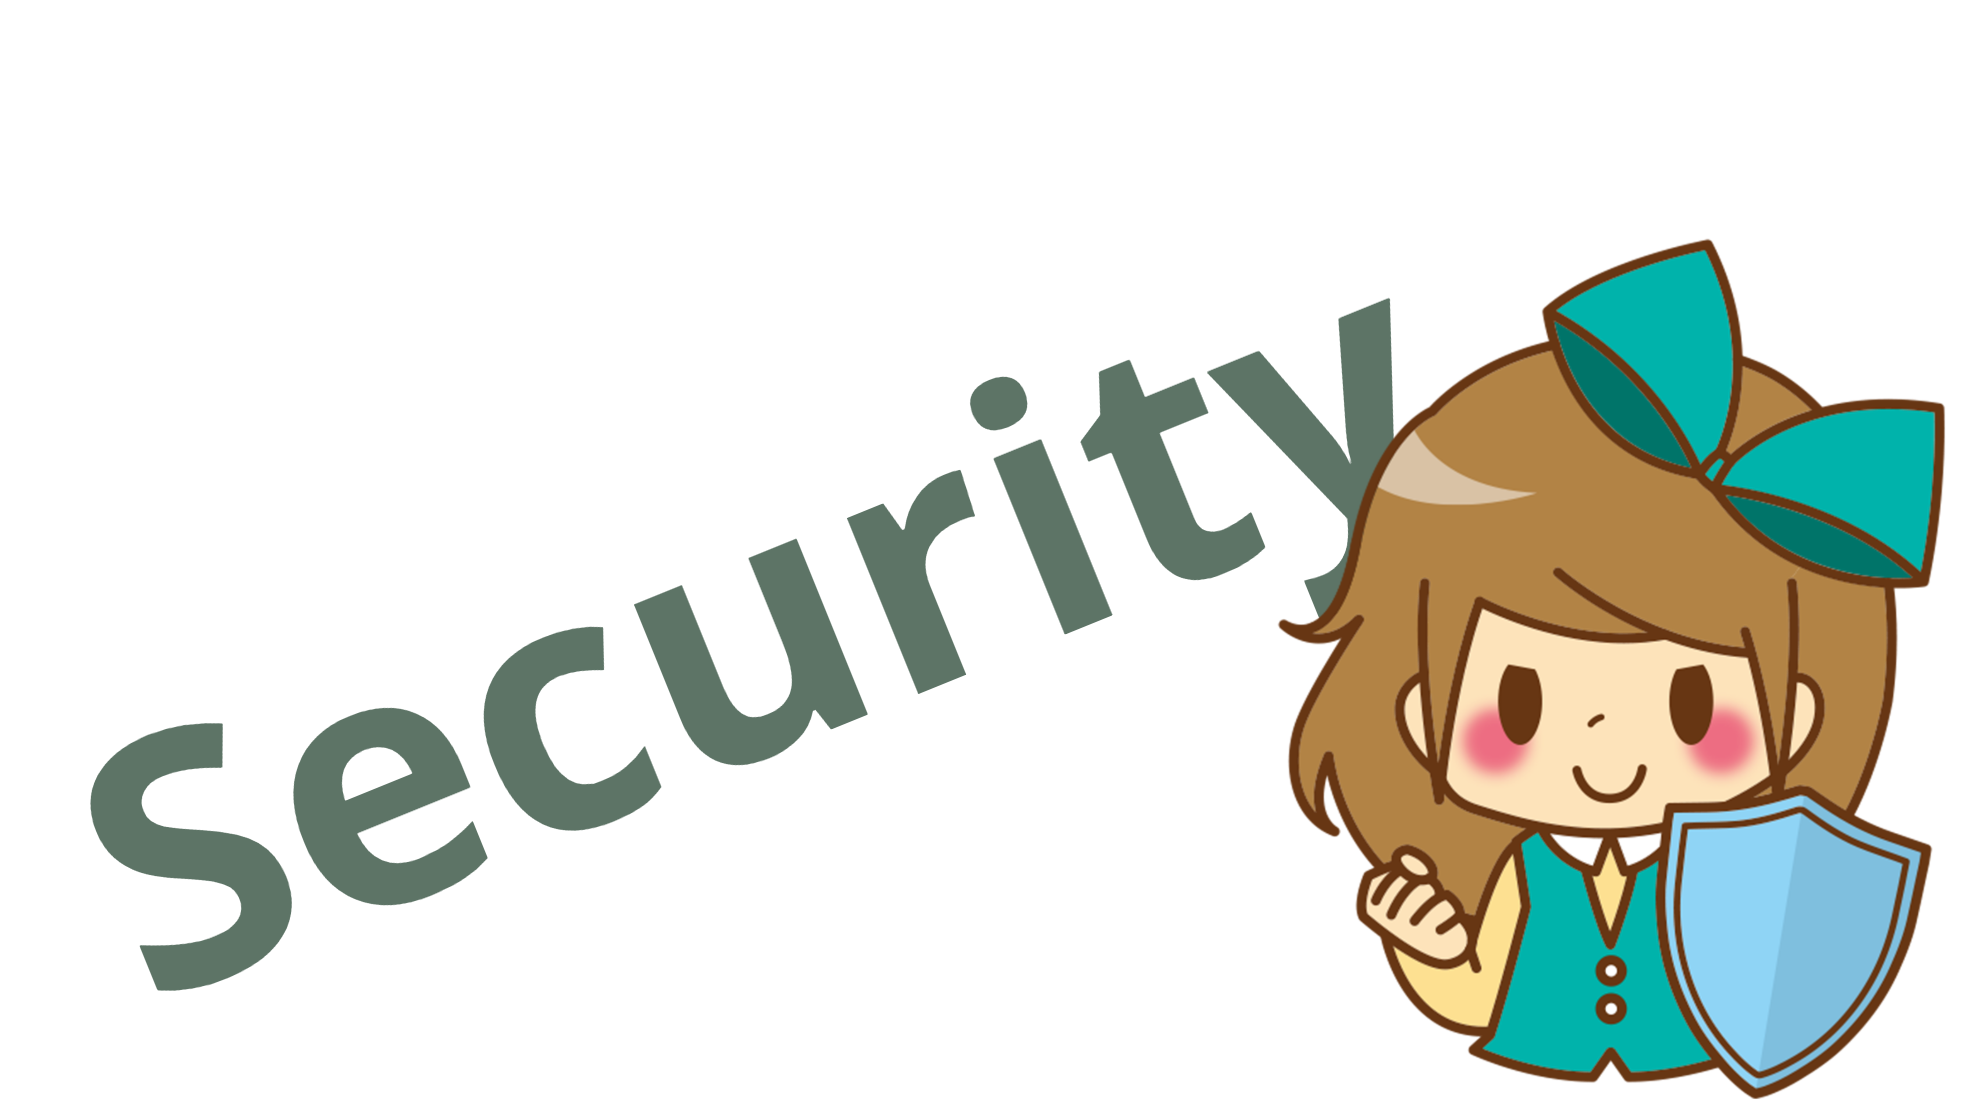 security icatch